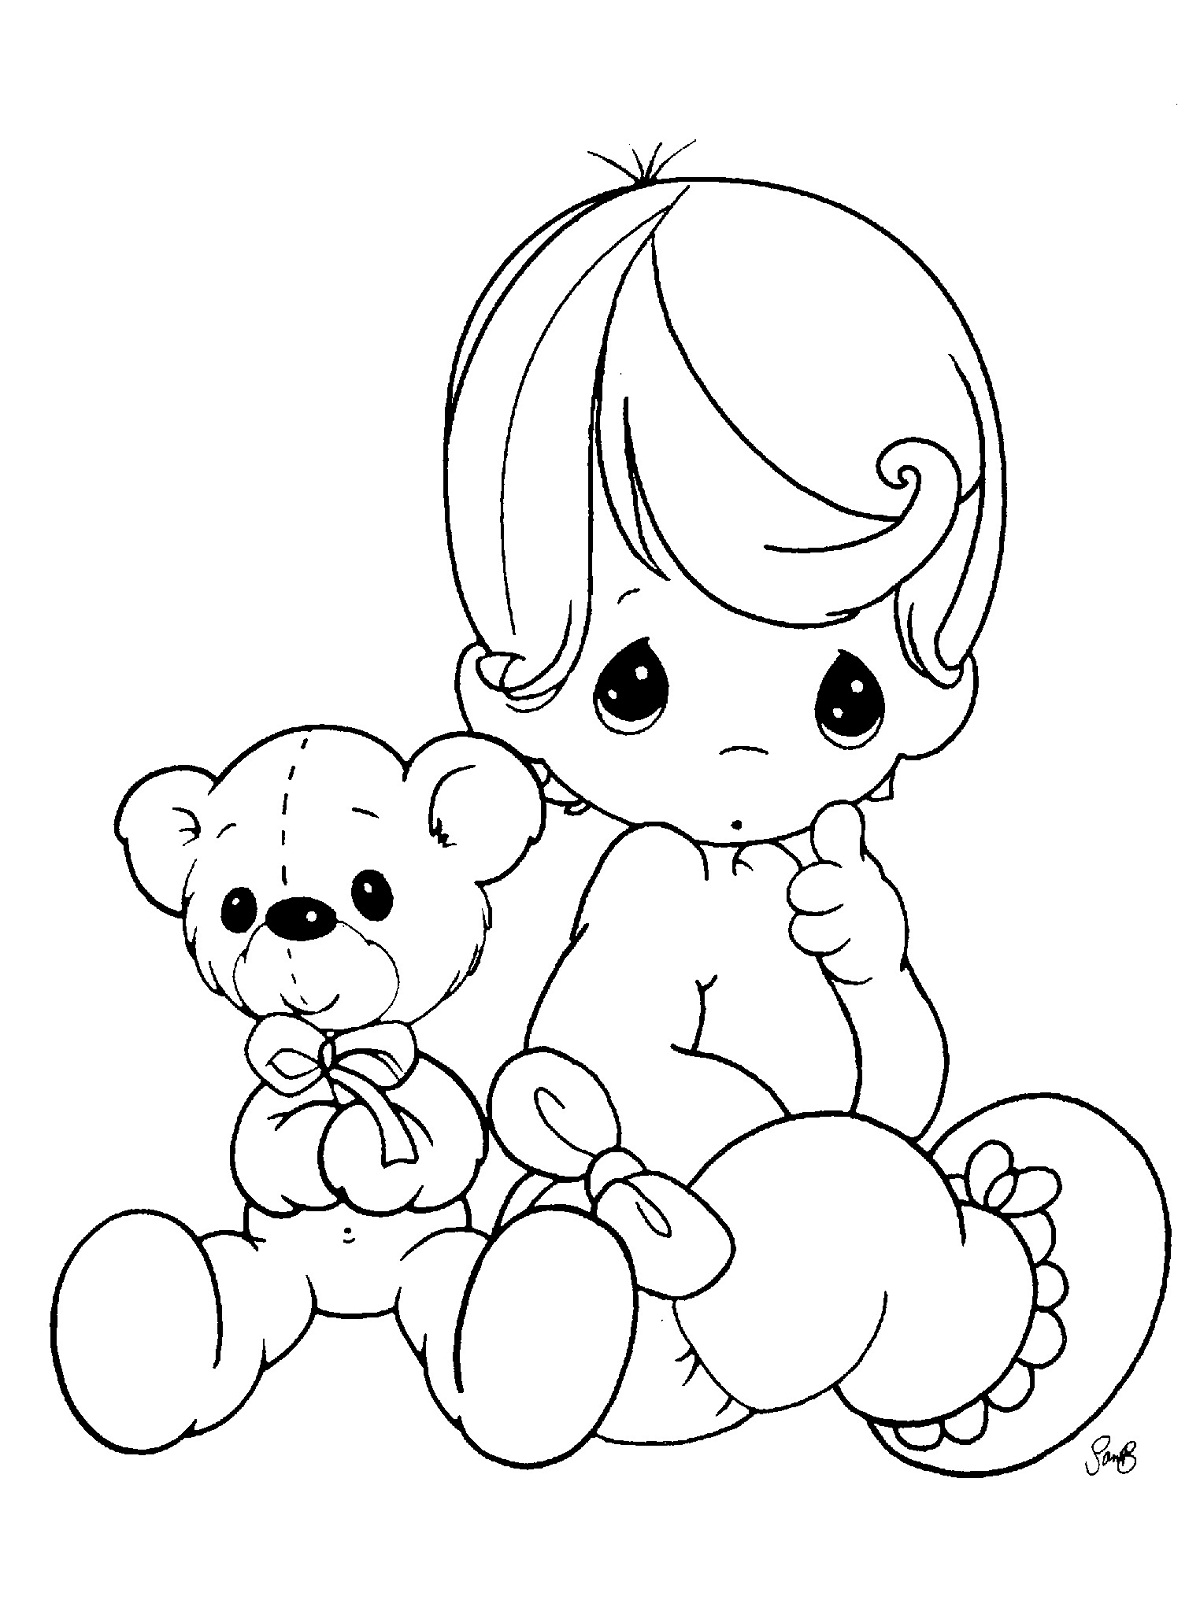 Rattle Coloring Page Free Printable Ba Coloring Pages For Kids